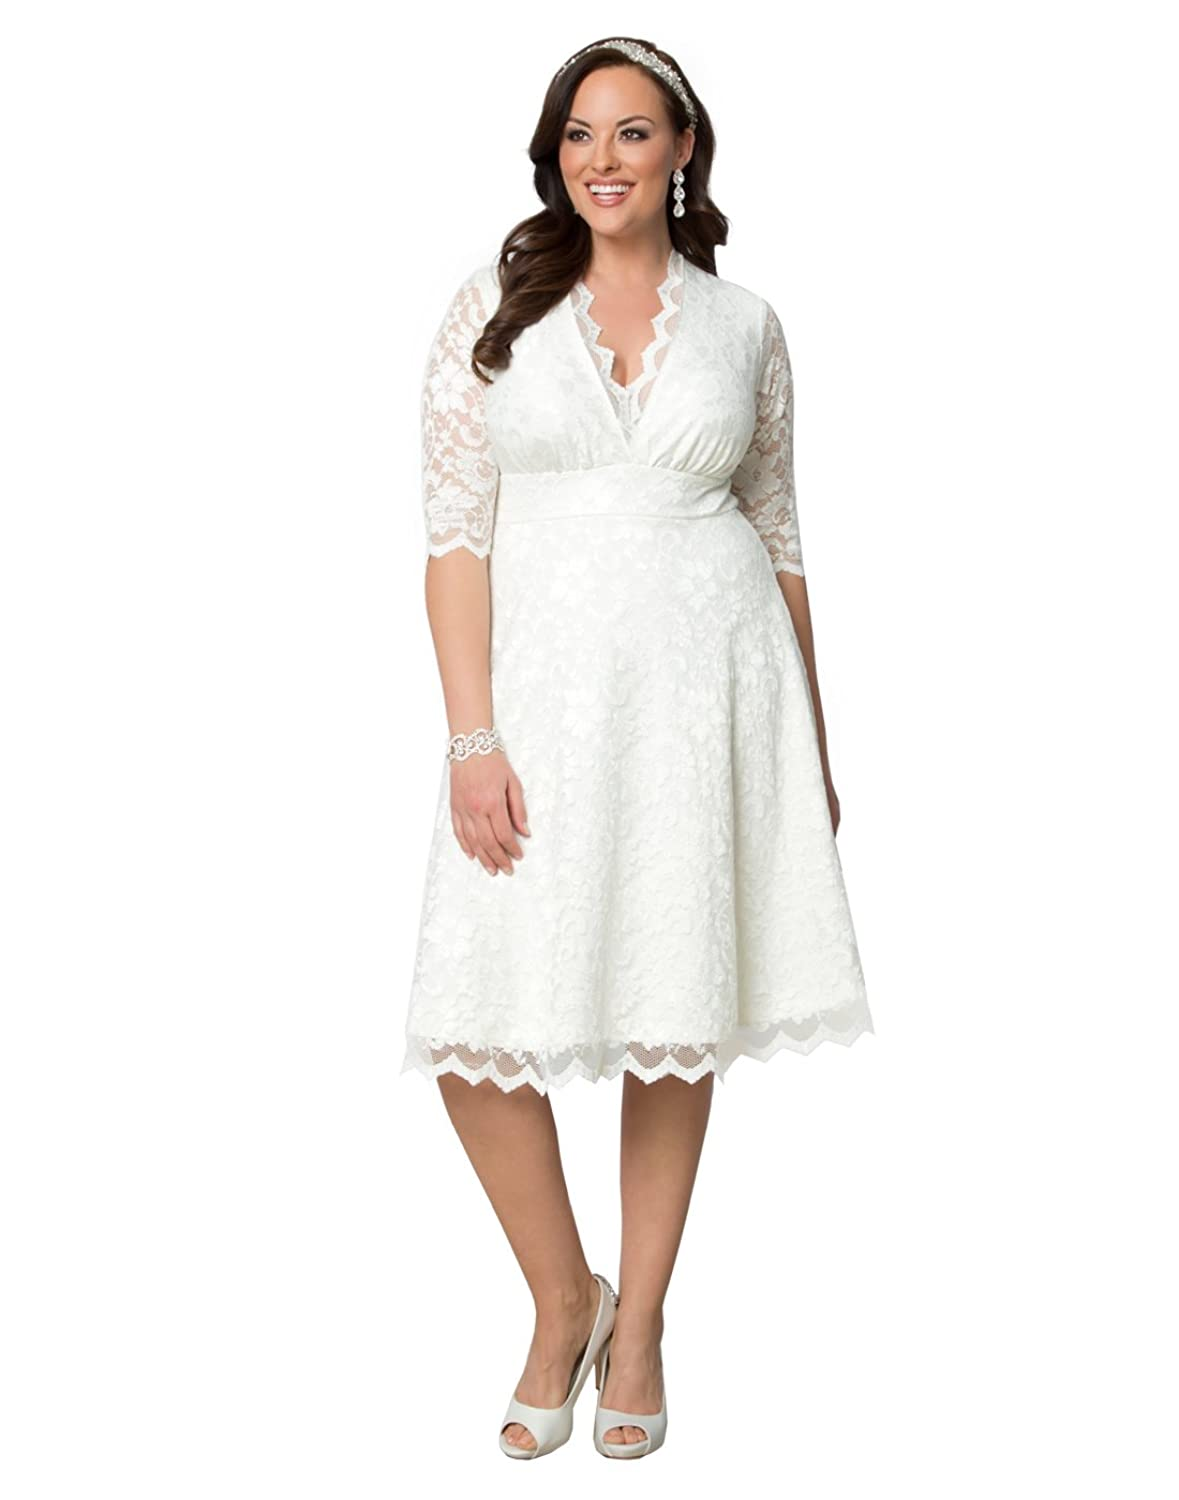 1950s Style Wedding Dresses Kiyonna Womens Plus Size Wedding Belle Dress $248.00 AT vintagedancer.com